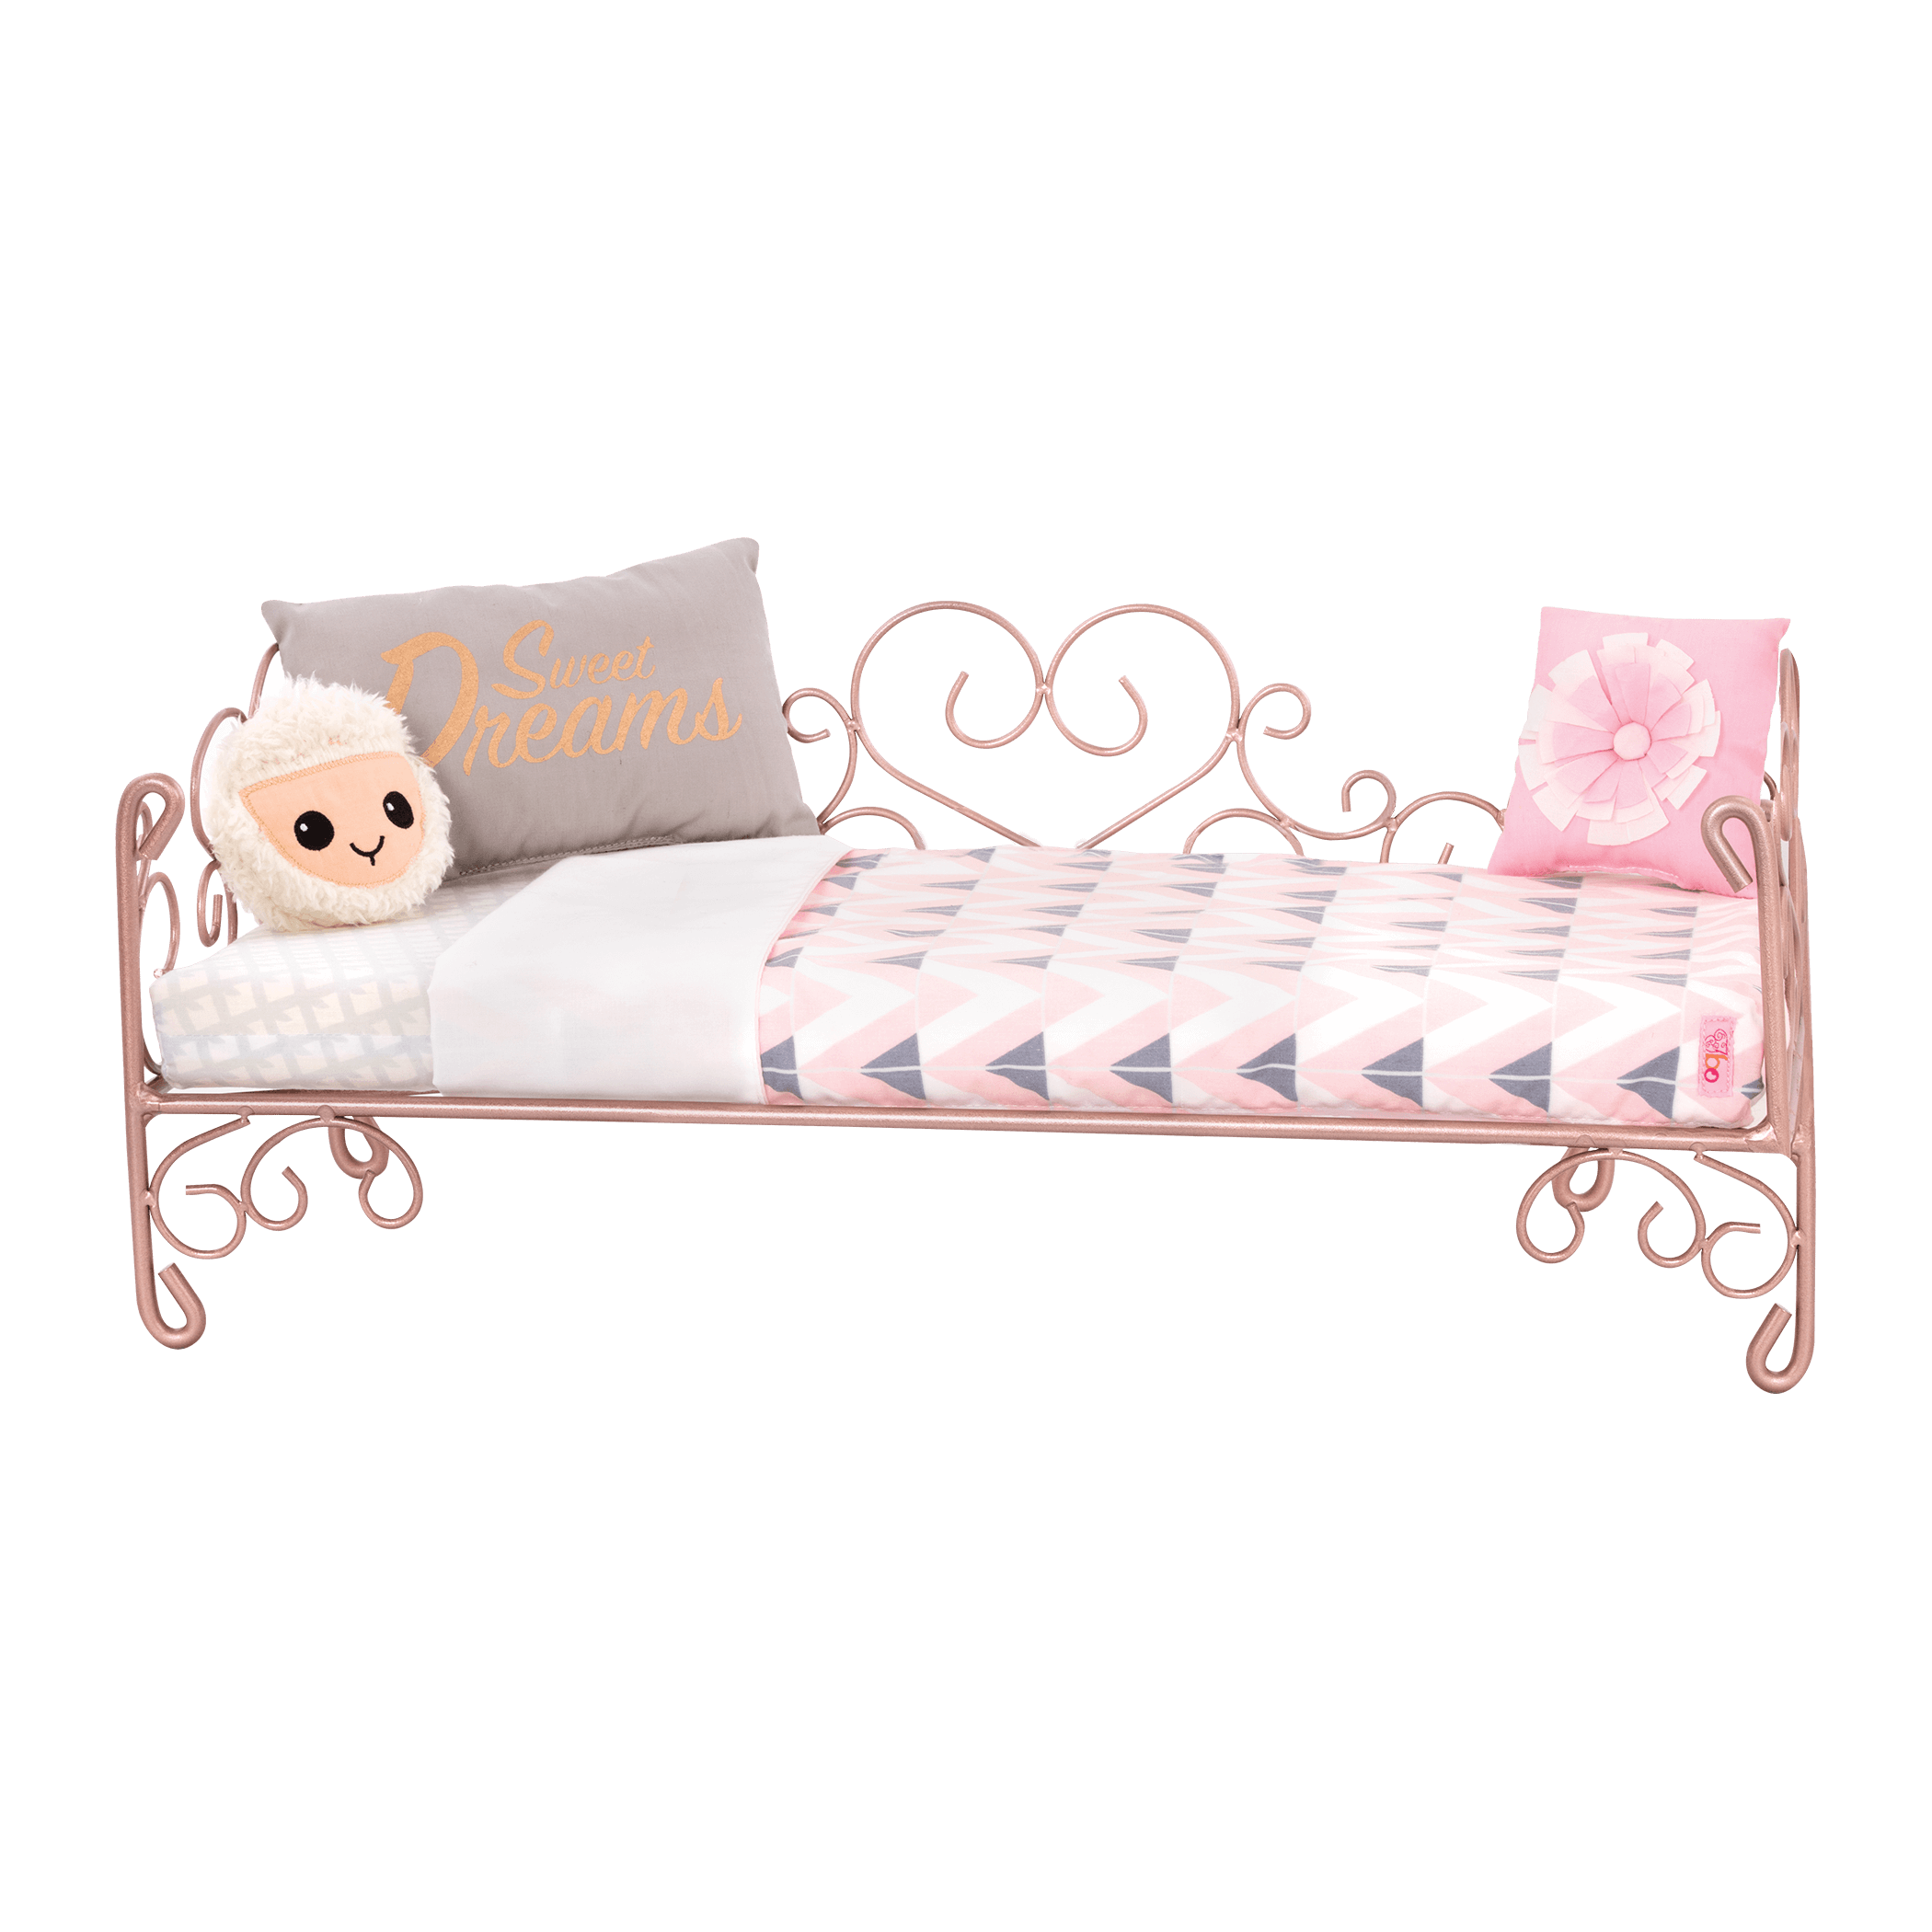 Sweet Dreams Scrollwork Bed for 18-inch Dolls